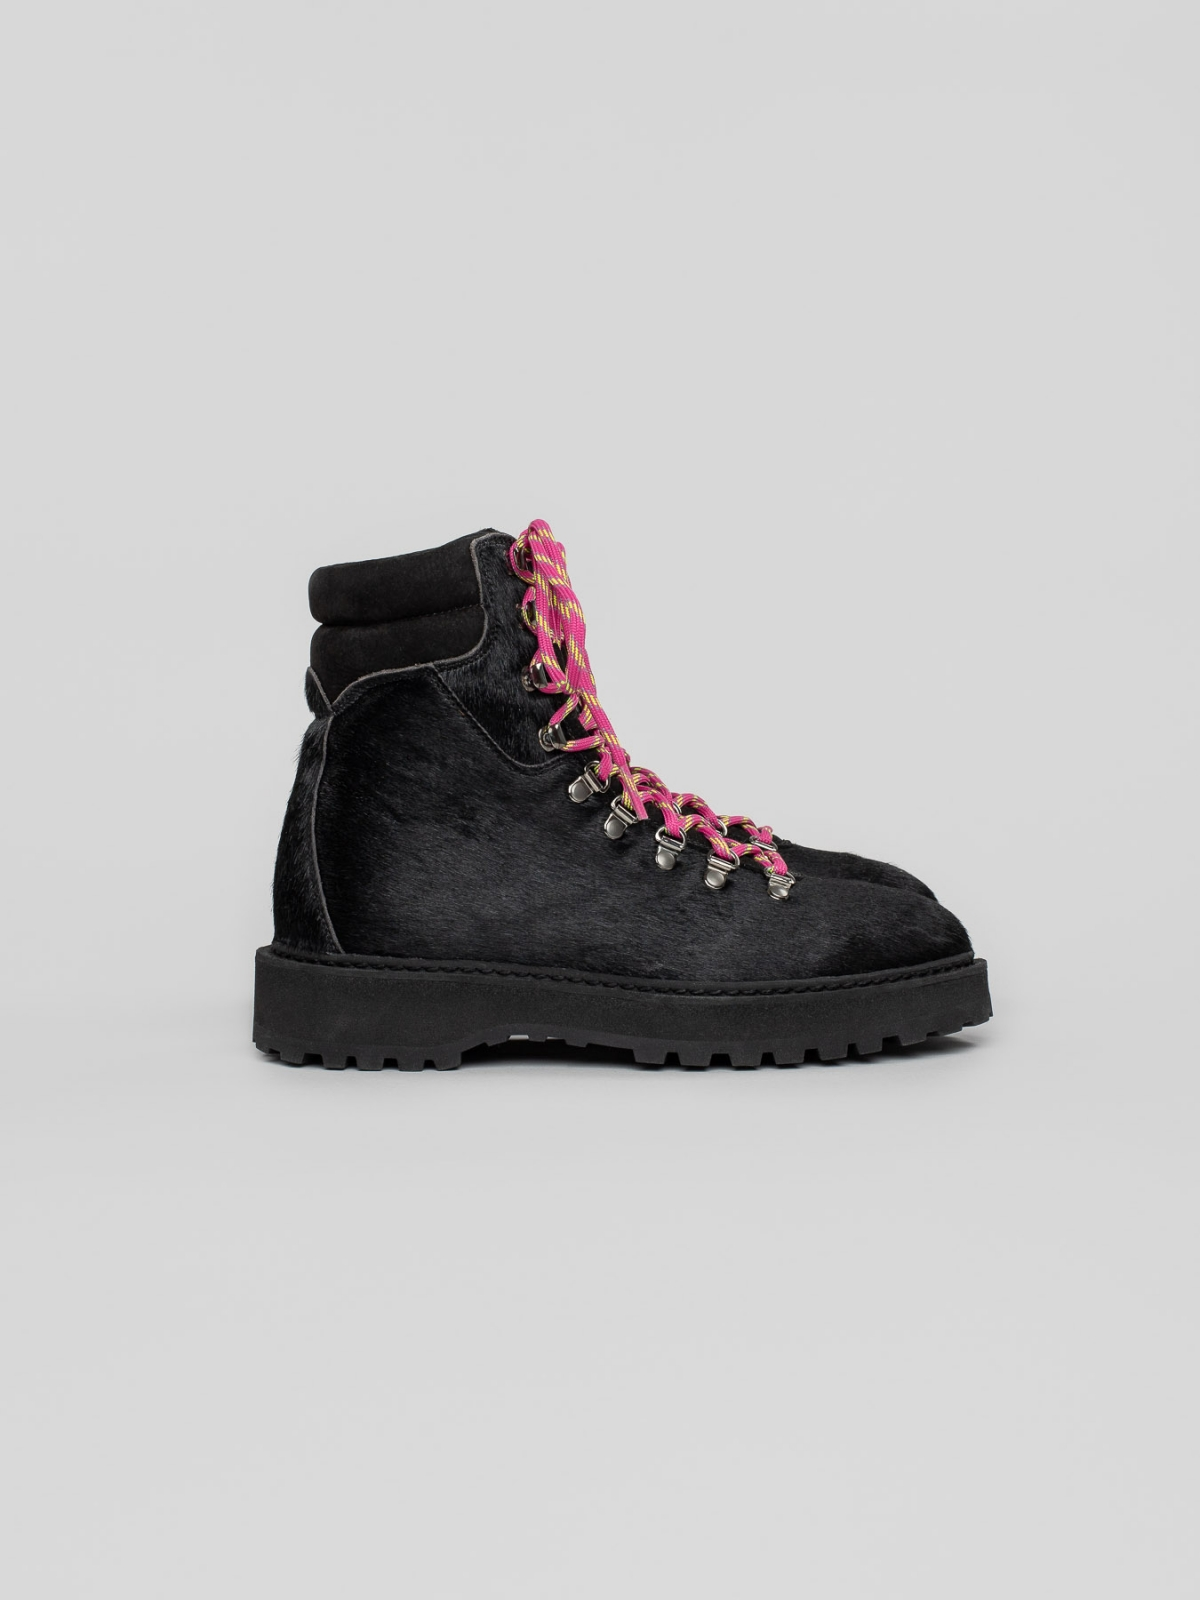 Diemme Monfumo Black Haircalf are the perfect winter boots